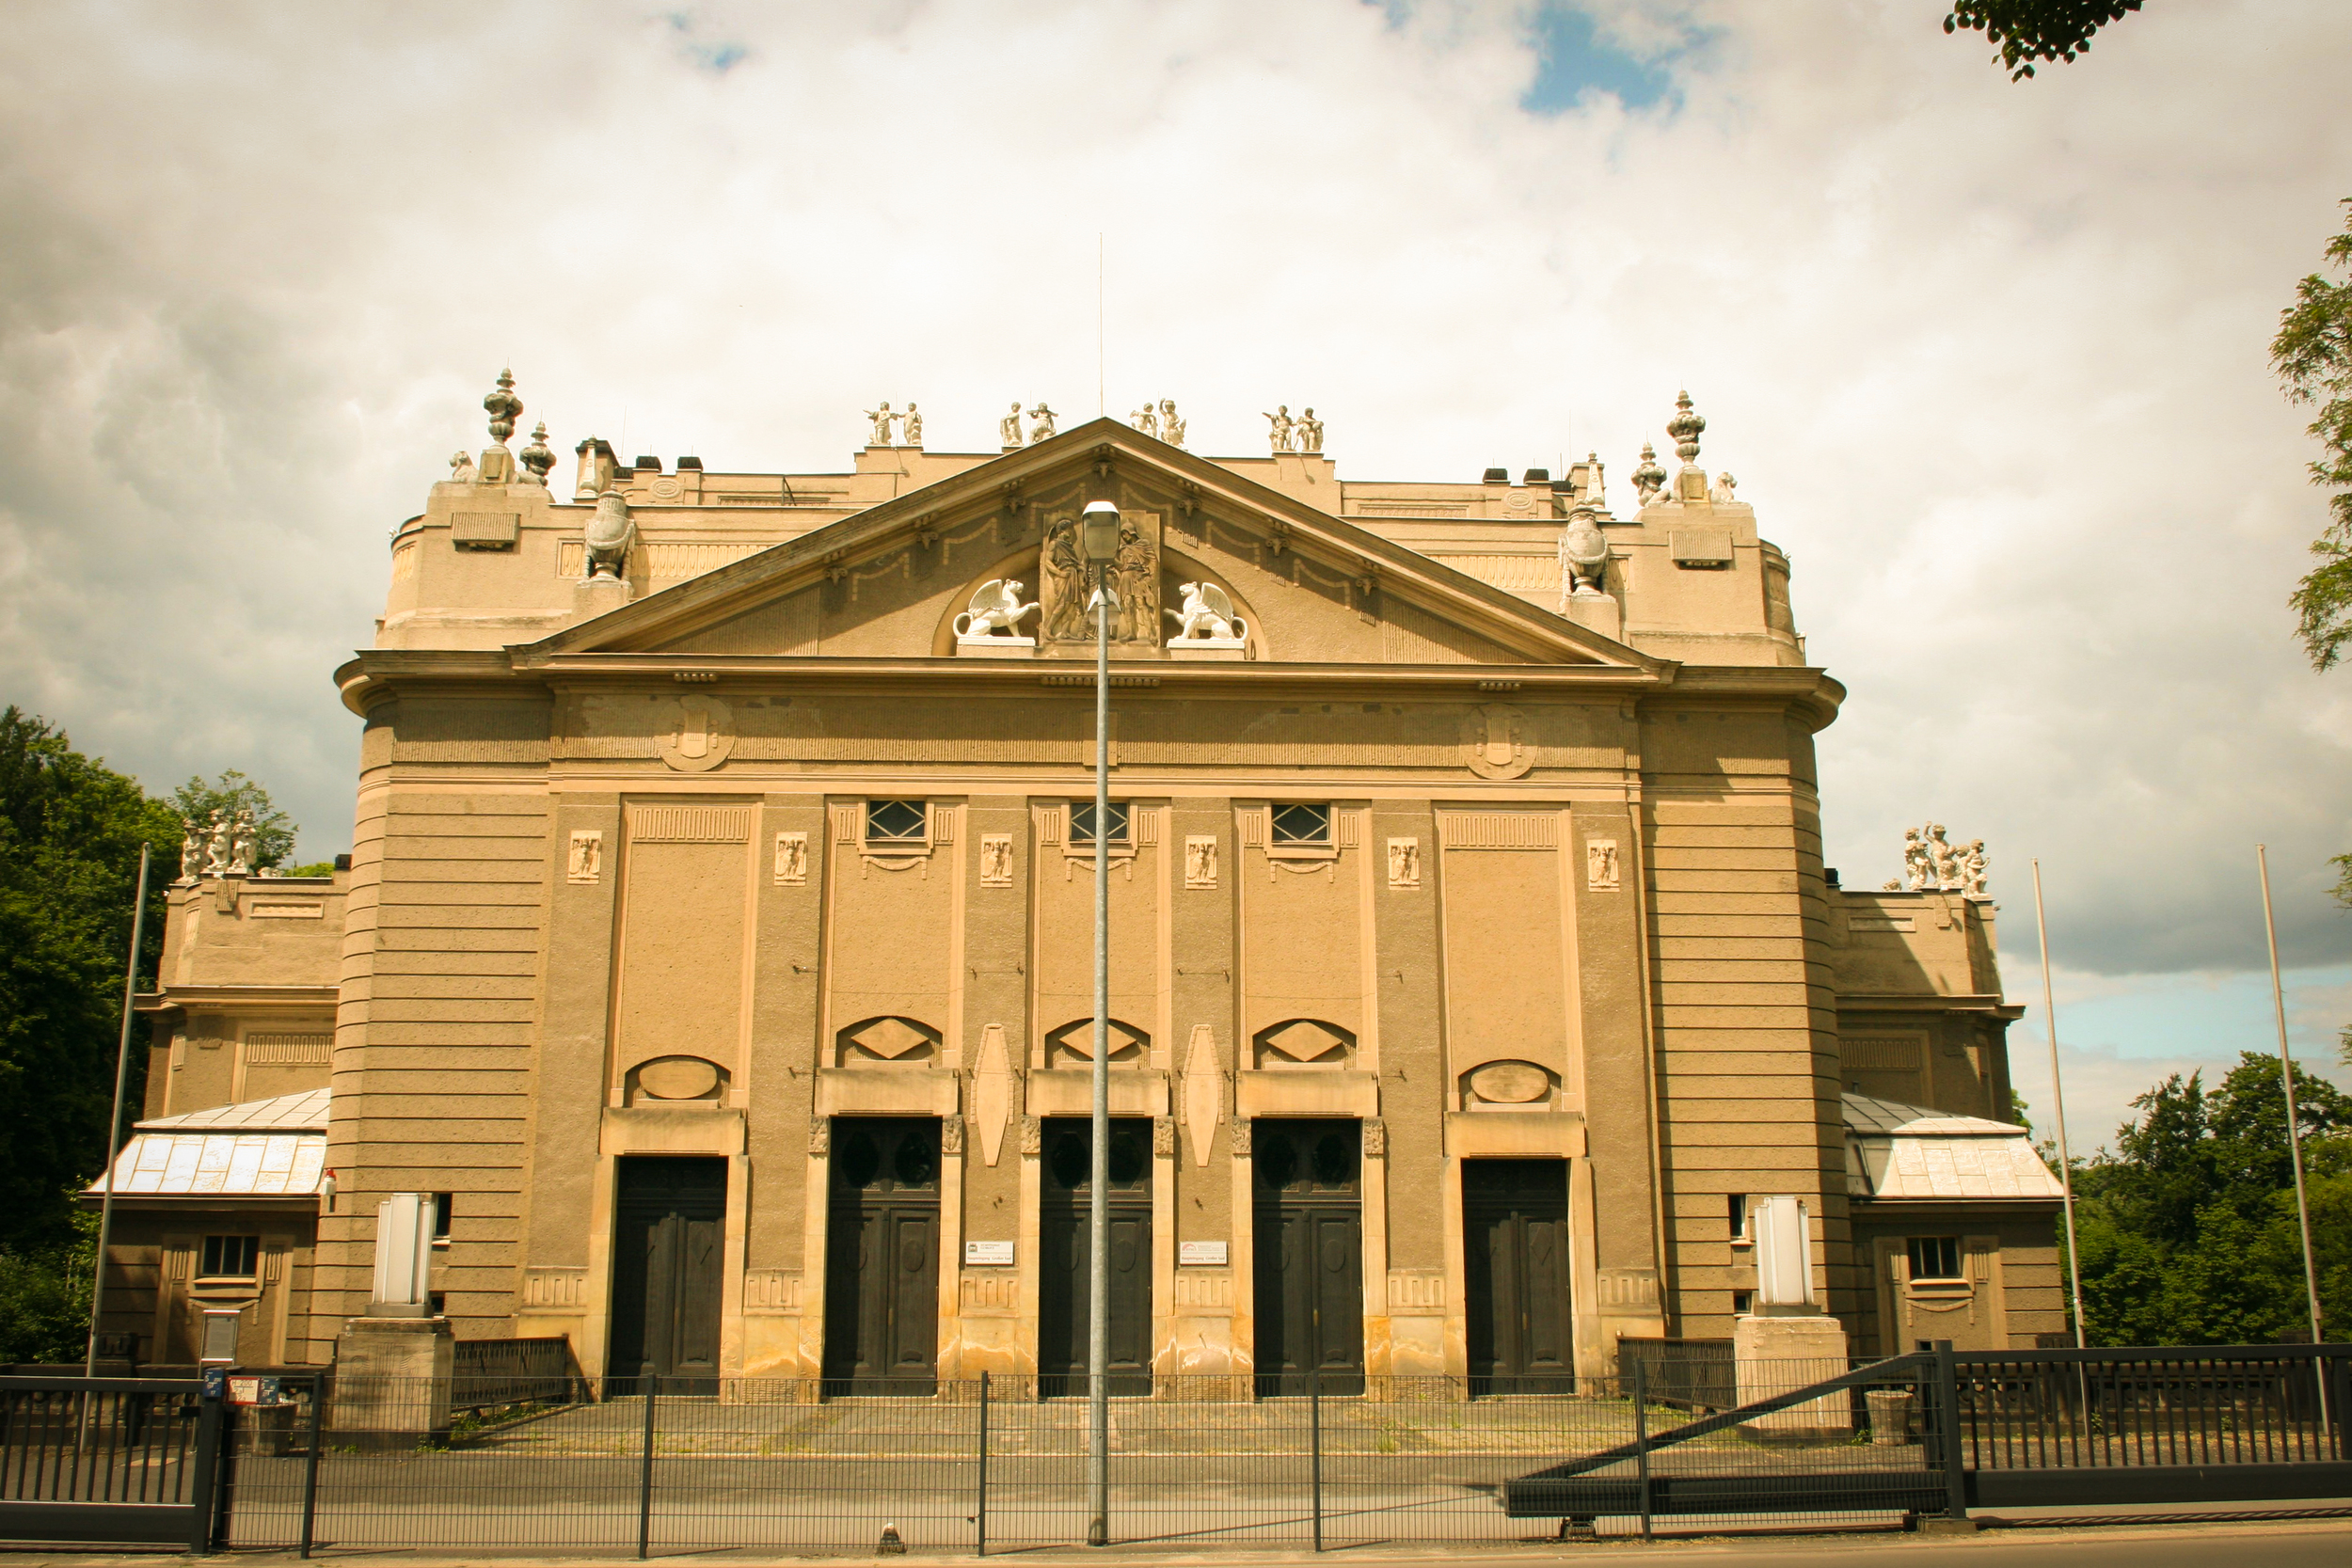 The Stadthalle - image via  Google .